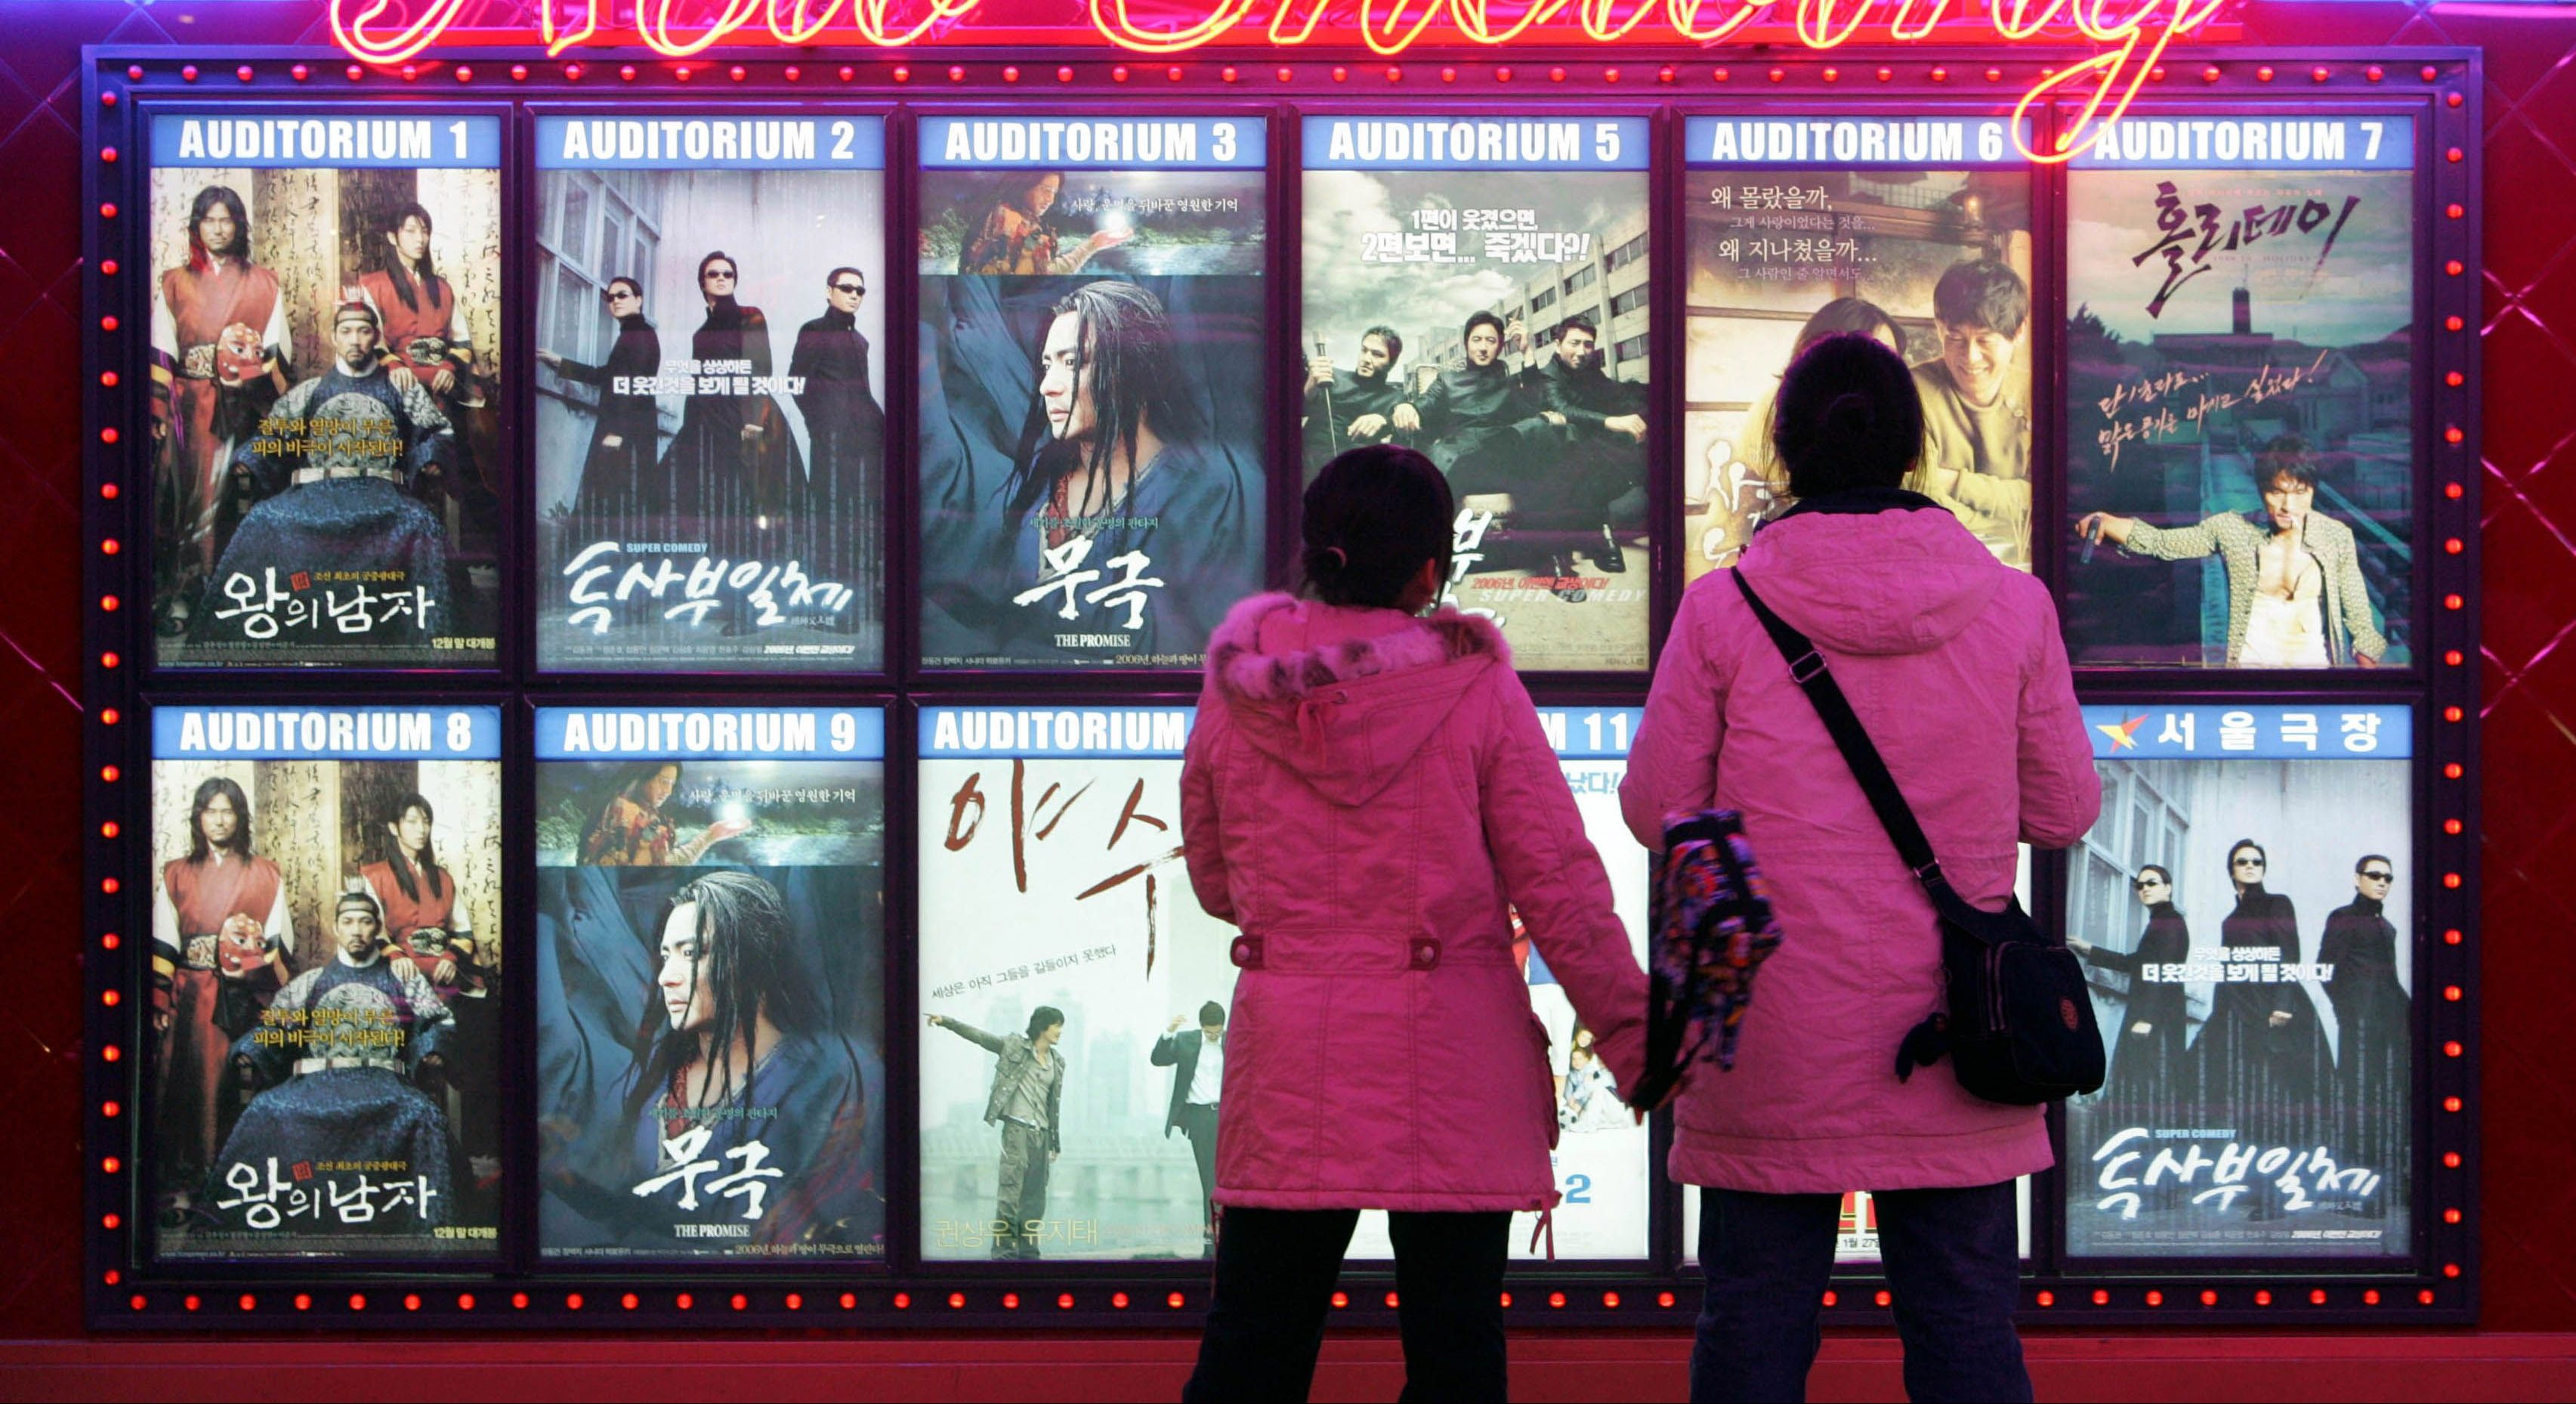 South Korean students look at movie posters at a theater in Seoul Thursday, Jan. 26, 2006. Hollywood is going to get greater access to South Korea's movie market after the government said Thursday it will cut in half the quota of homegrown films that must be shown in the country's cinemas. The United States had denounced the quota system as an unfair trade practice and major hurdle as the two countries move toward starting negotiations on a free trade agreement.